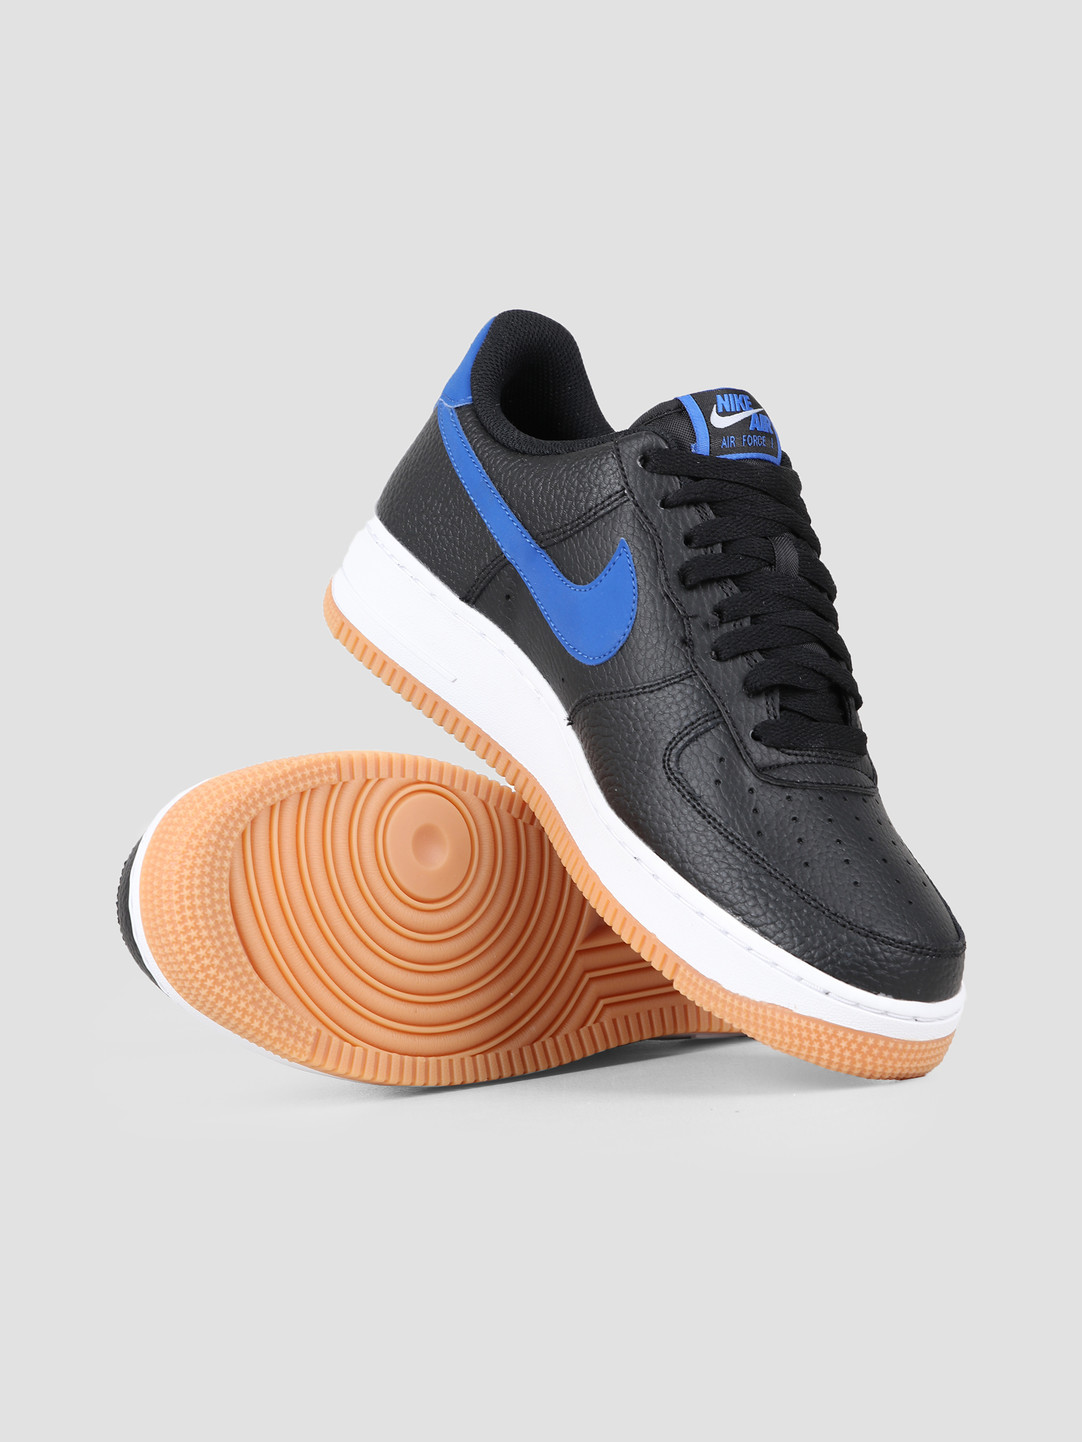 Nike Air Force 1 07 2 Black Game Royal White Gum Med Brown CI0057 001